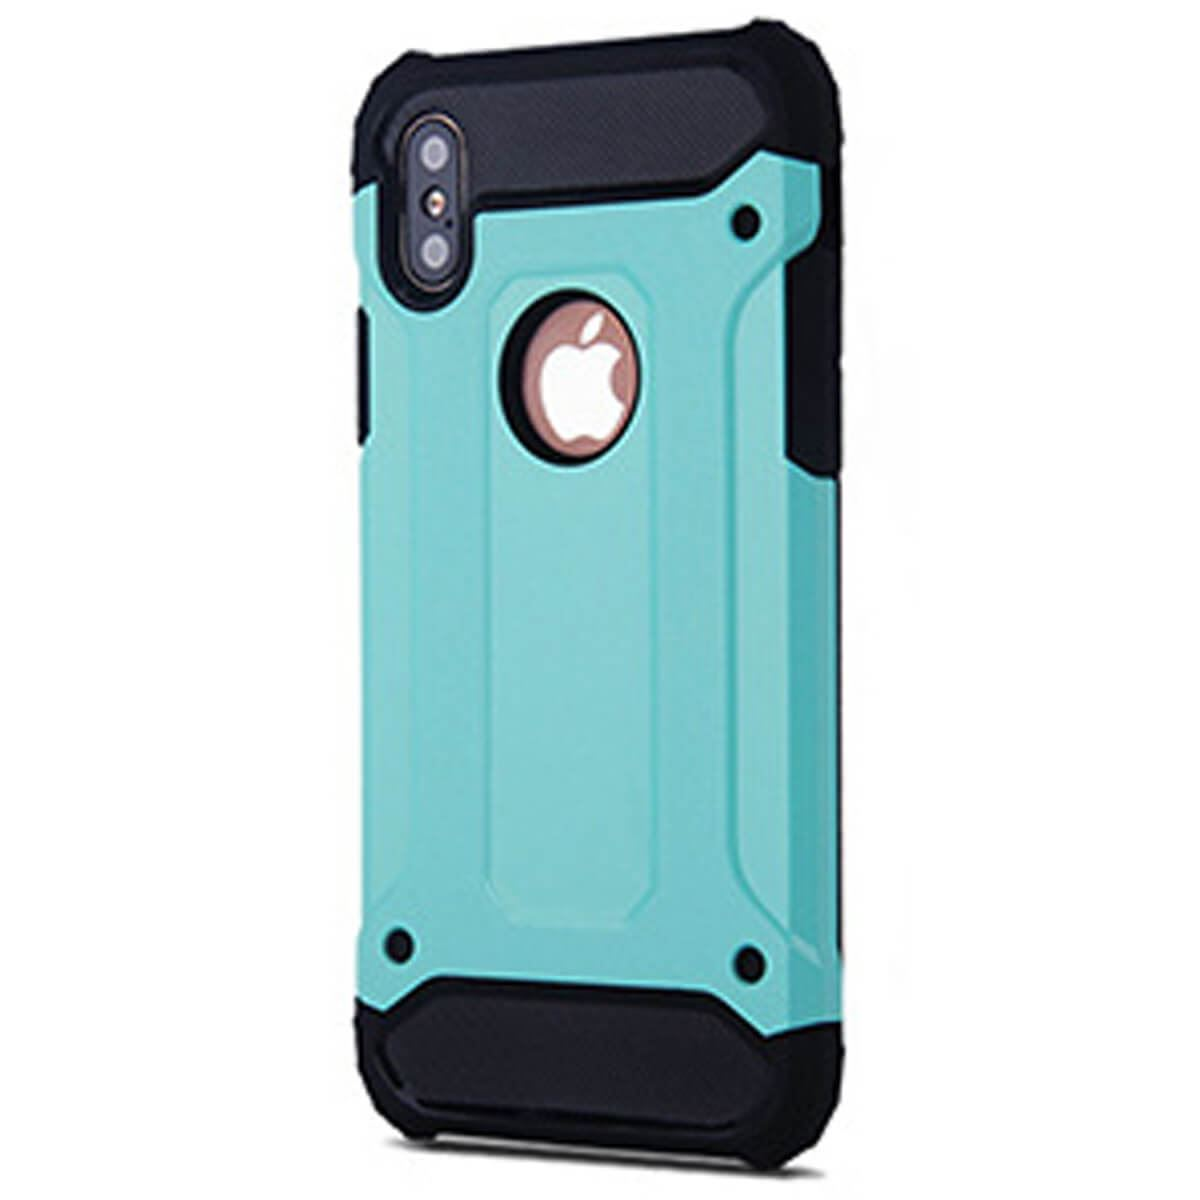 Shockproof-Bumper-Case-For-Apple-iPhone-10-X-8-7-Plus-6s-5s-Hybrid-Armor-Rugged thumbnail 14